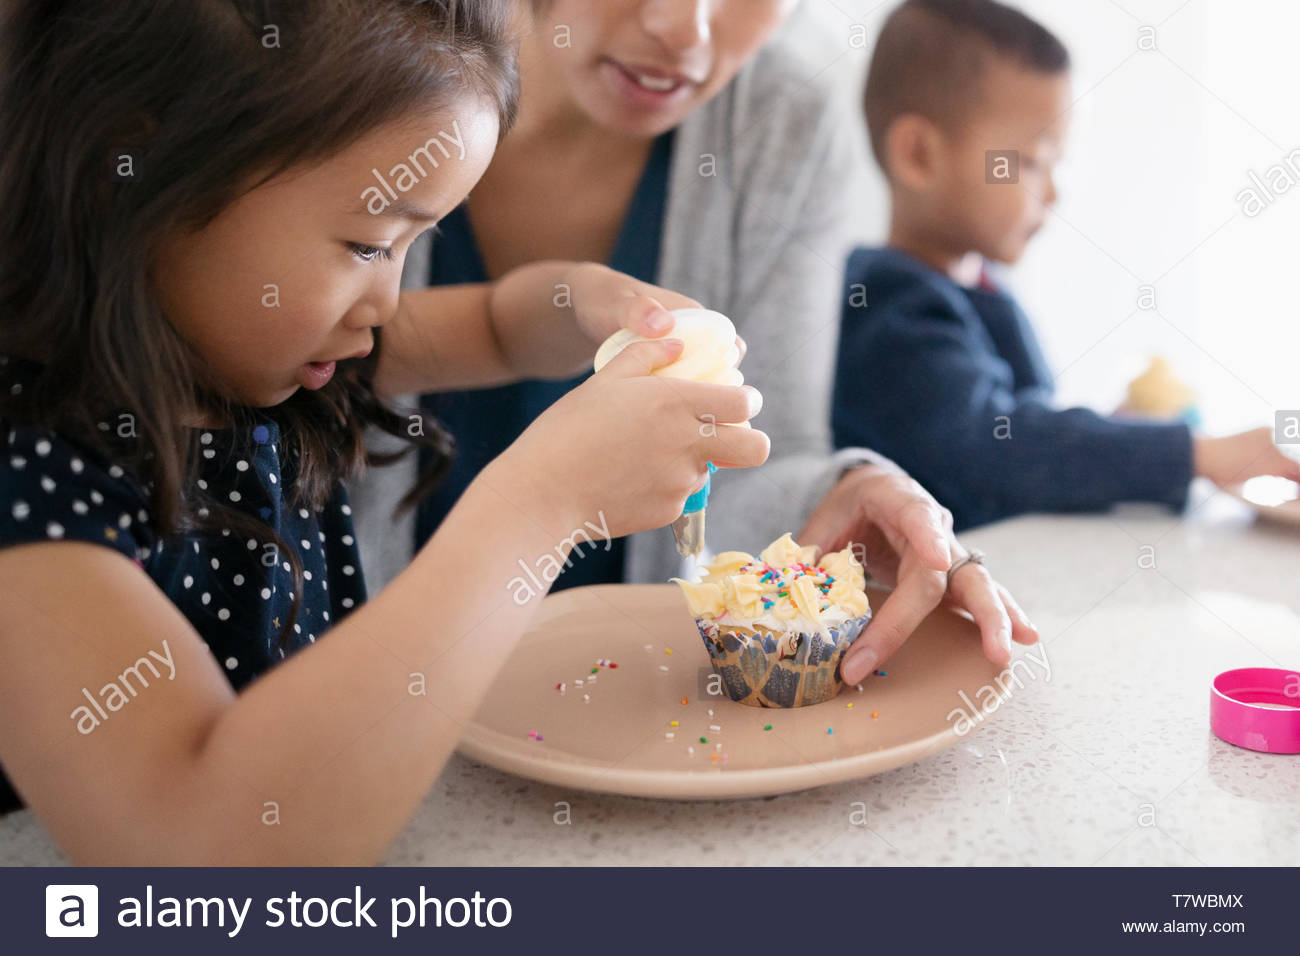 Mother and daughter decorating cupcakes in kitchen - Stock Image